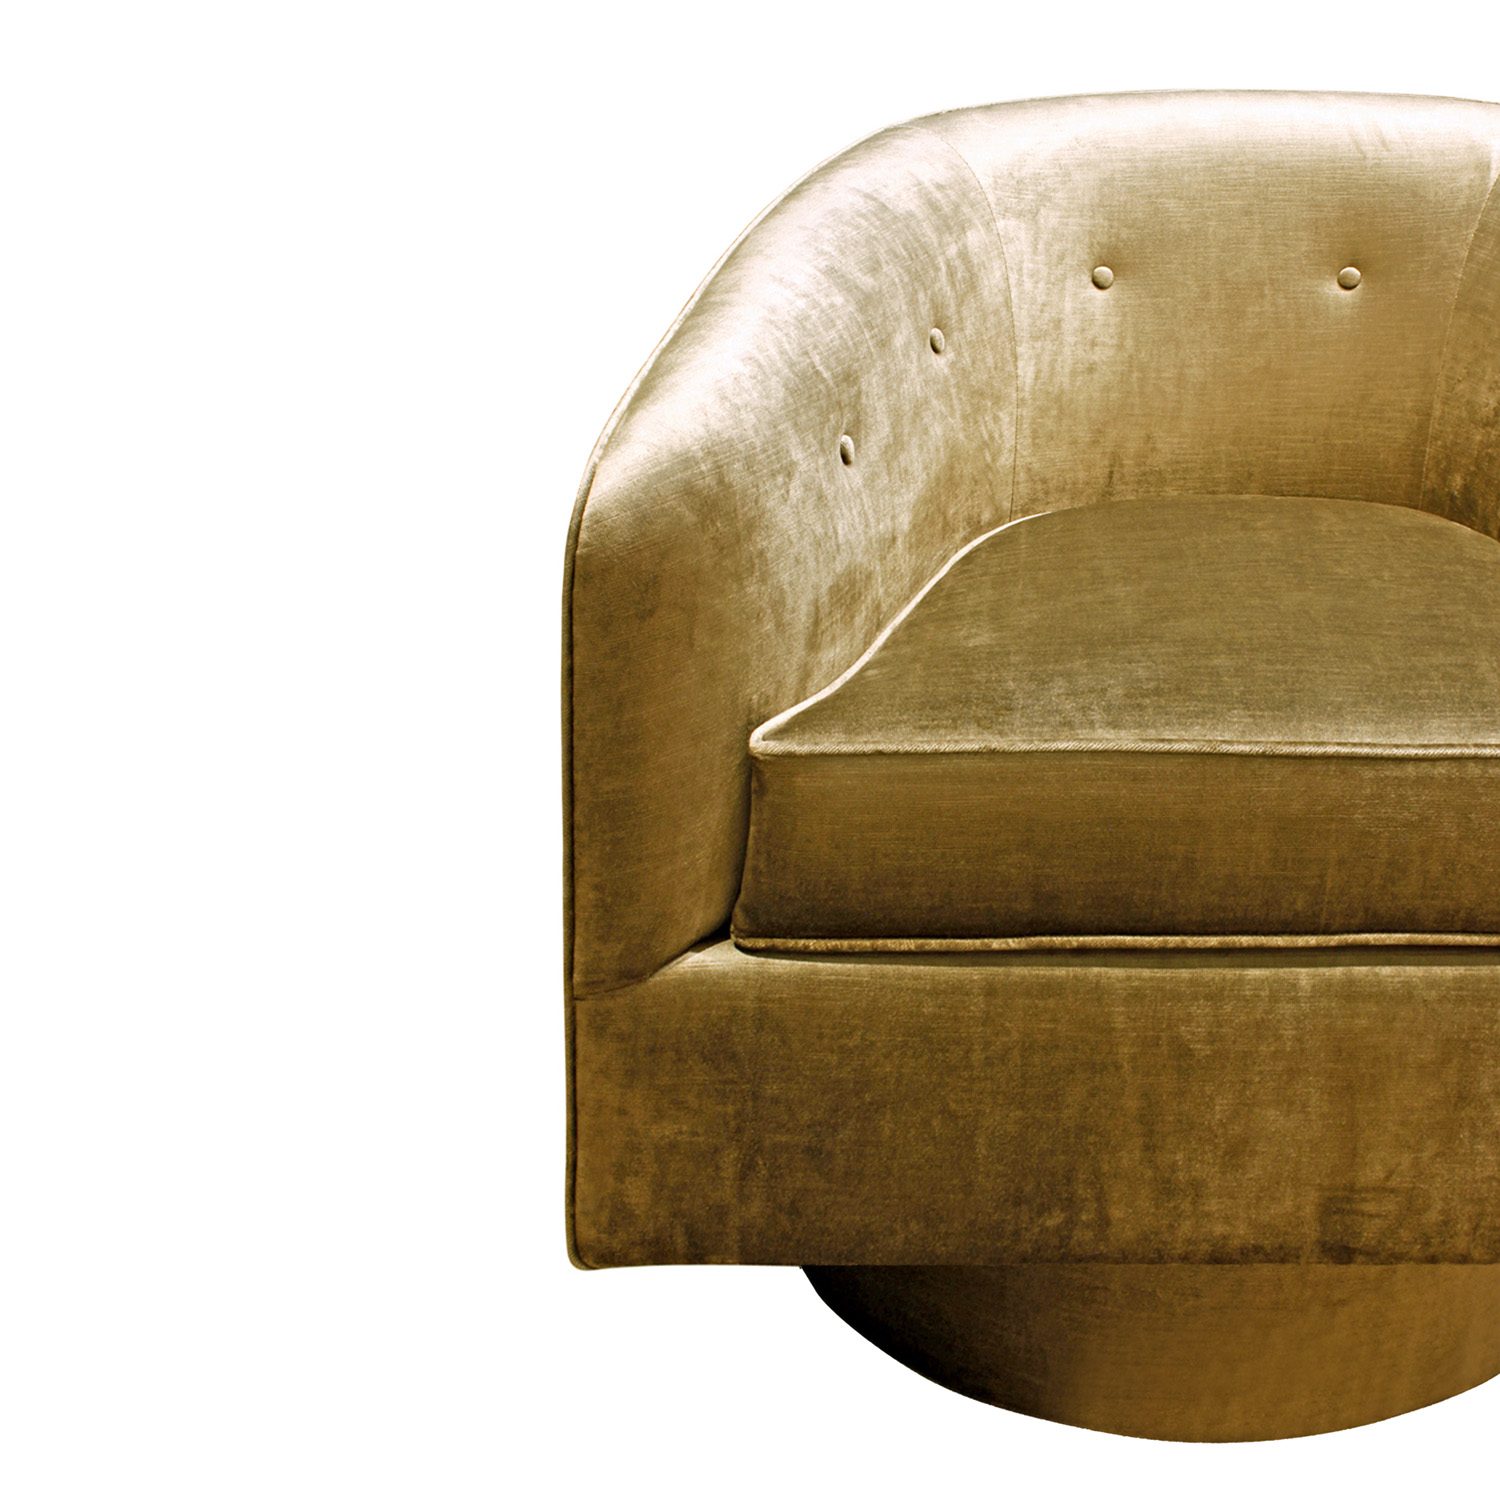 60s 75 barrel bk sml swivel bronz loungechairs157 dtl.jpg